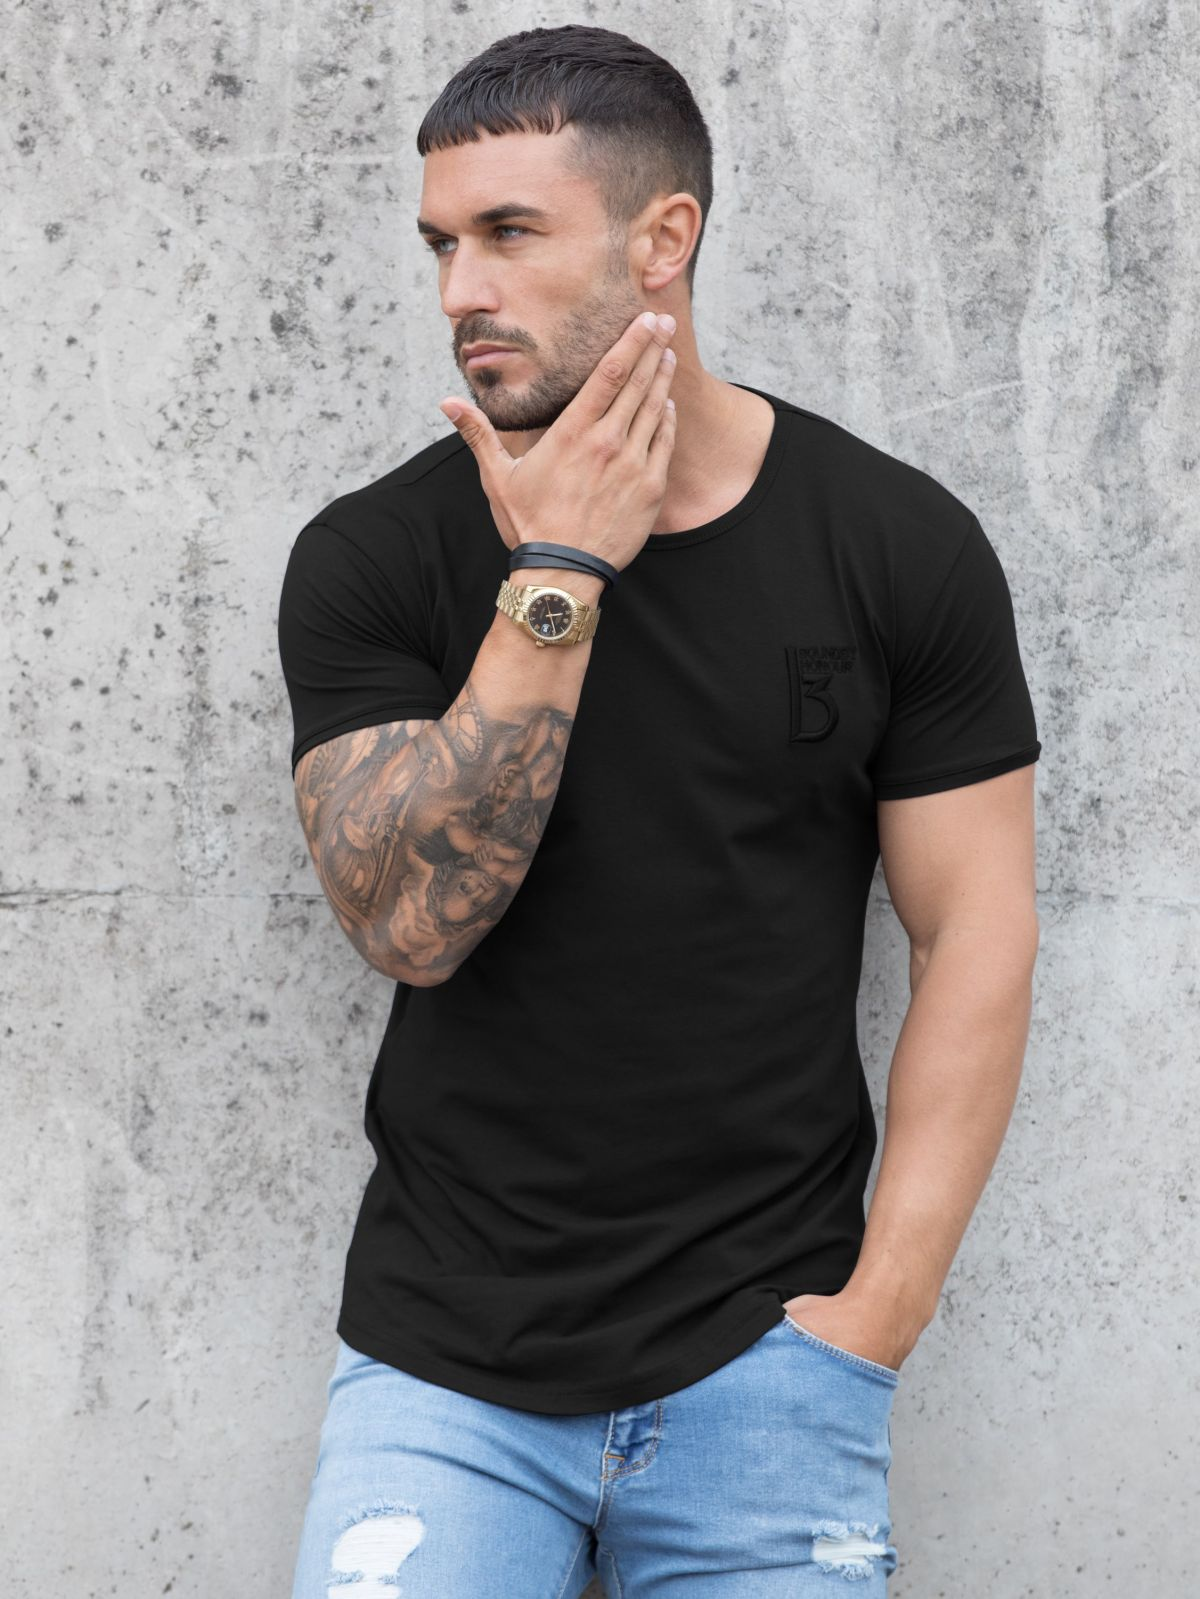 Clearance   BBH Men's Branded Short Sleeve Athletic T-shirt   Bound By Honour